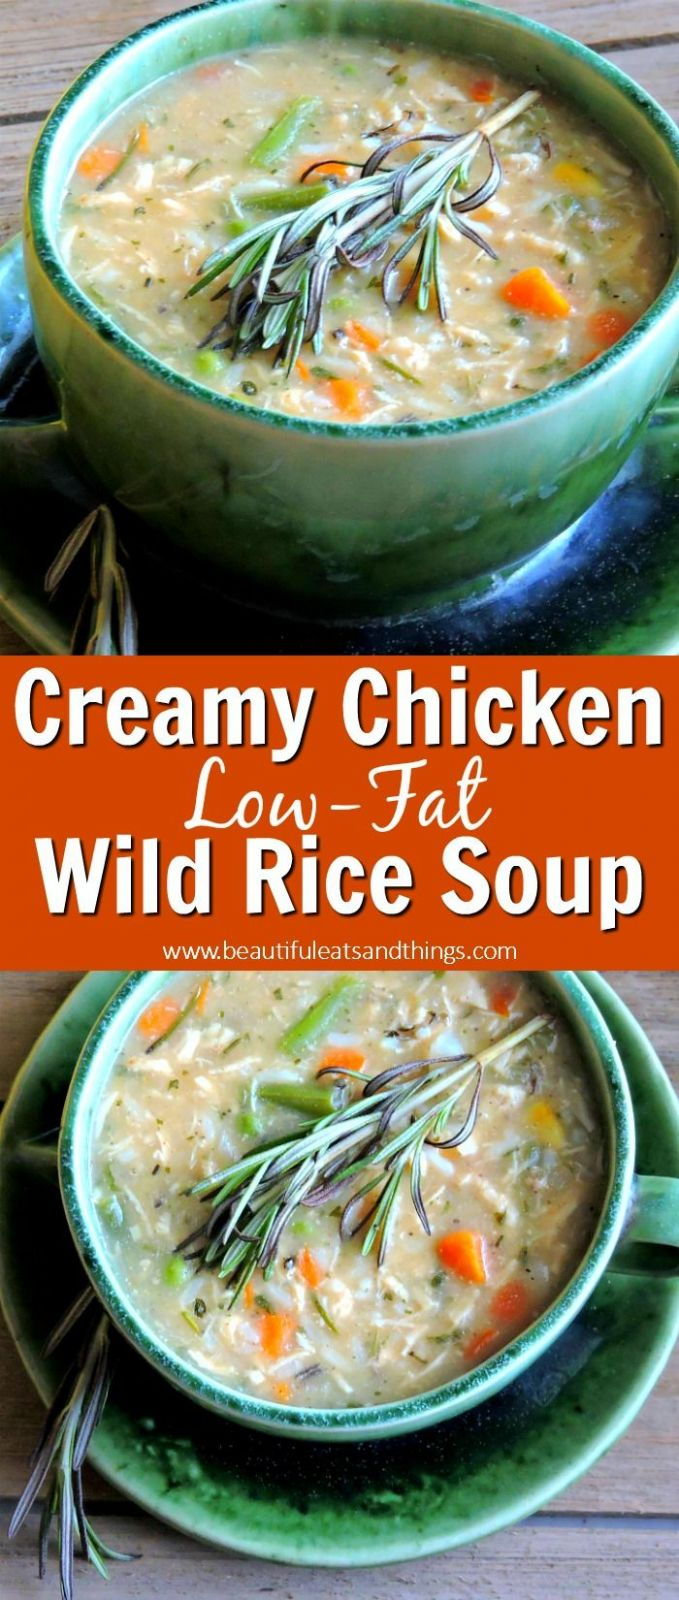 Low-Fat Creamy Chicken and Wild Rice Soup - Soup Recipes Low Fat